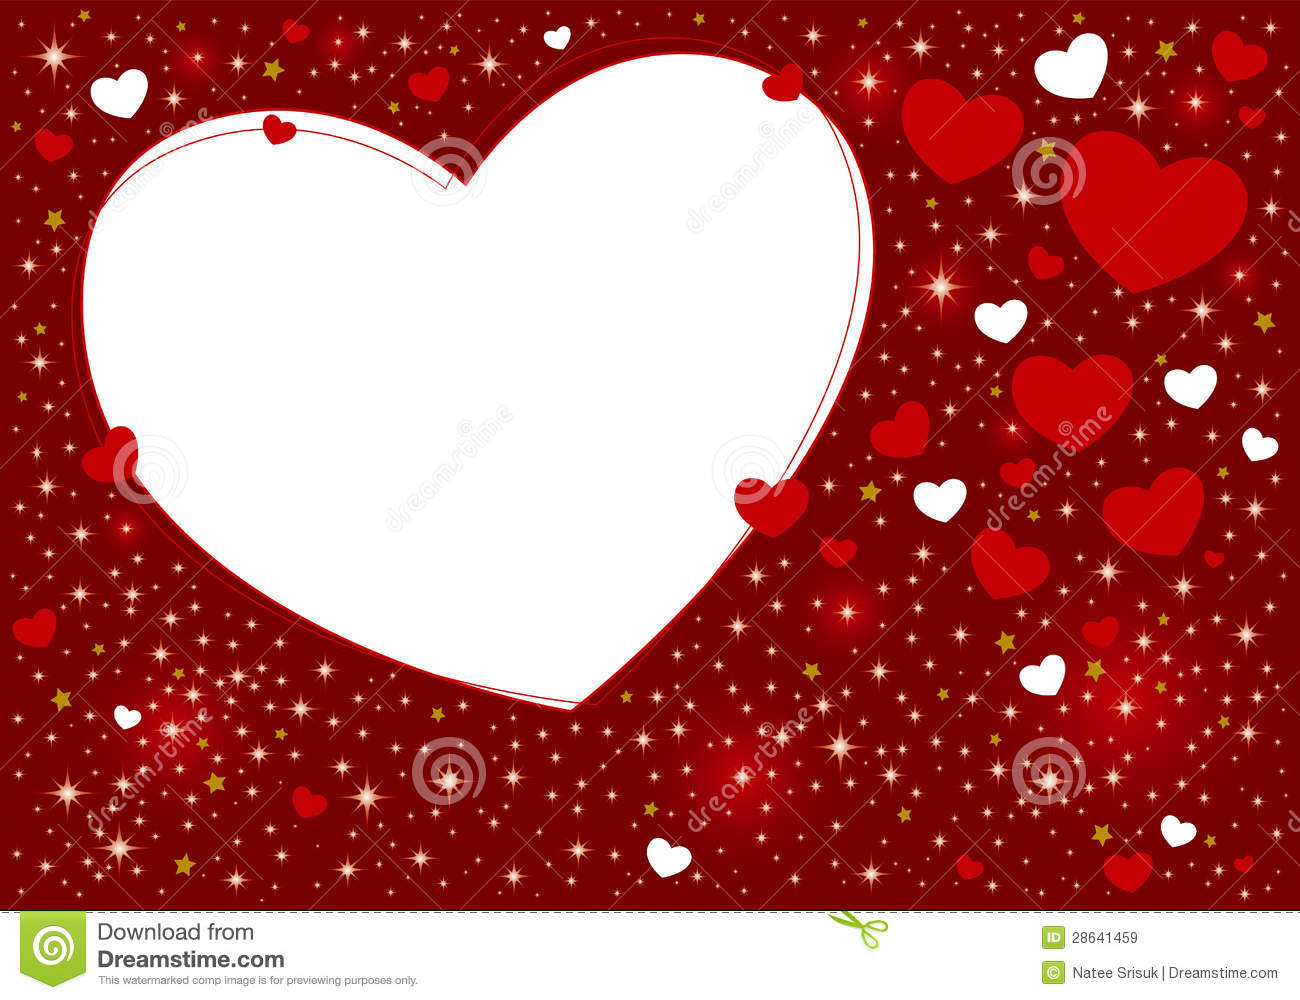 Heart background design stock image image of valentine for Heartbeat design